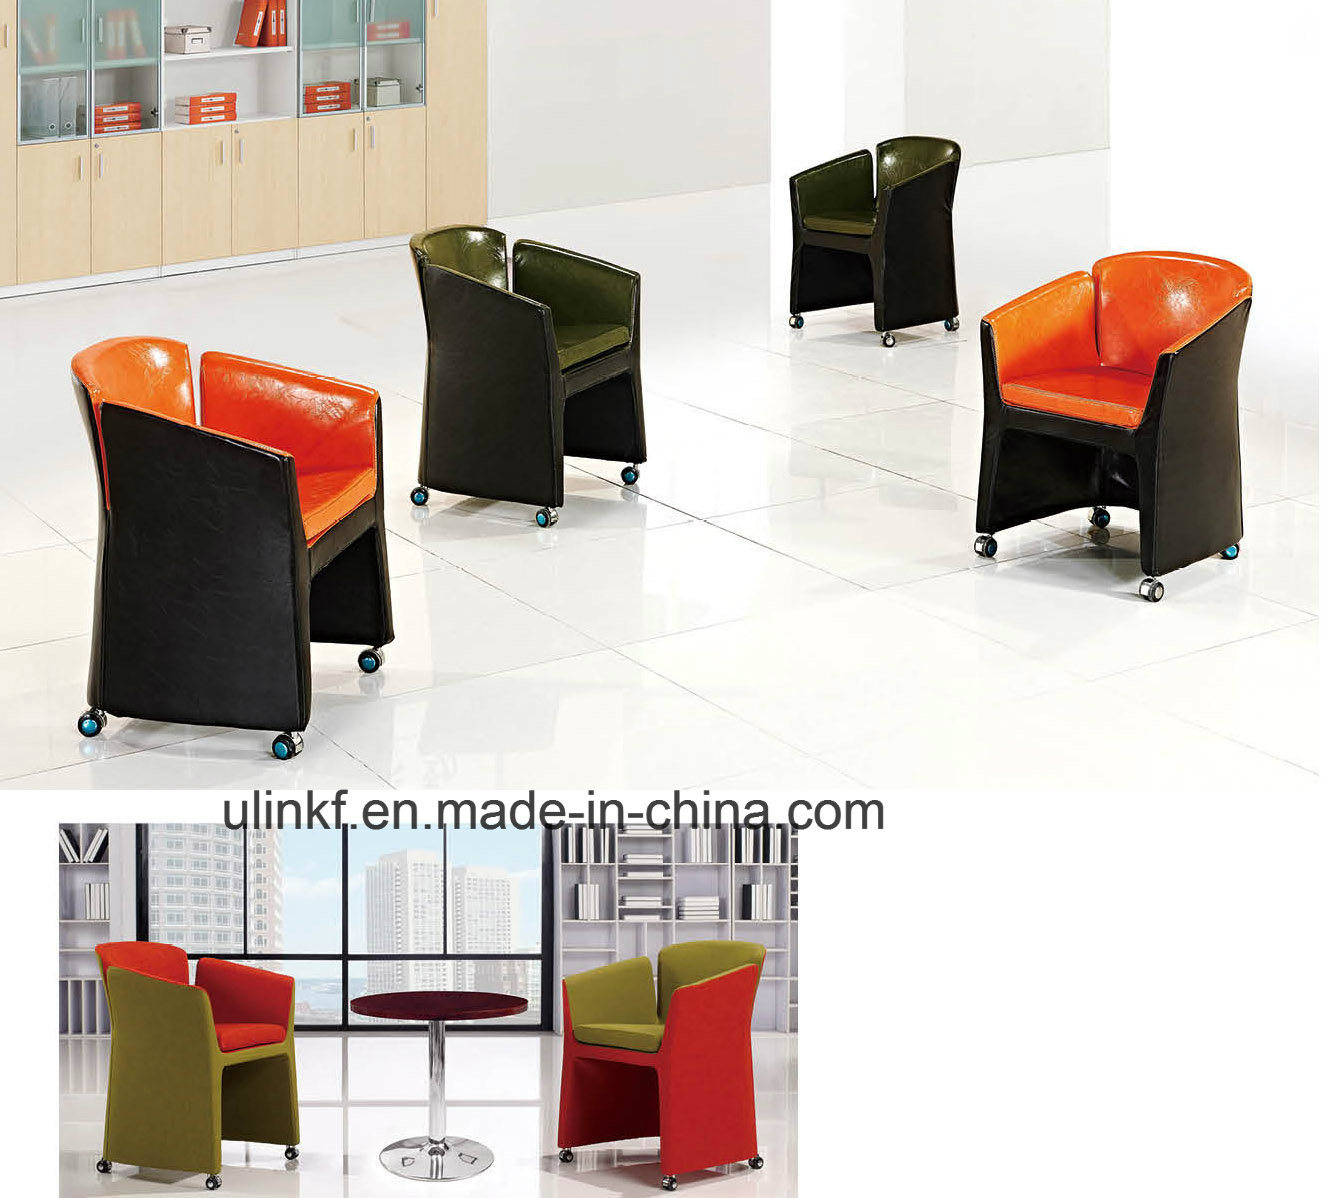 Foldable Conference Reception Sofa Chairs Hotel Lobby Furniture (UL-JT842)